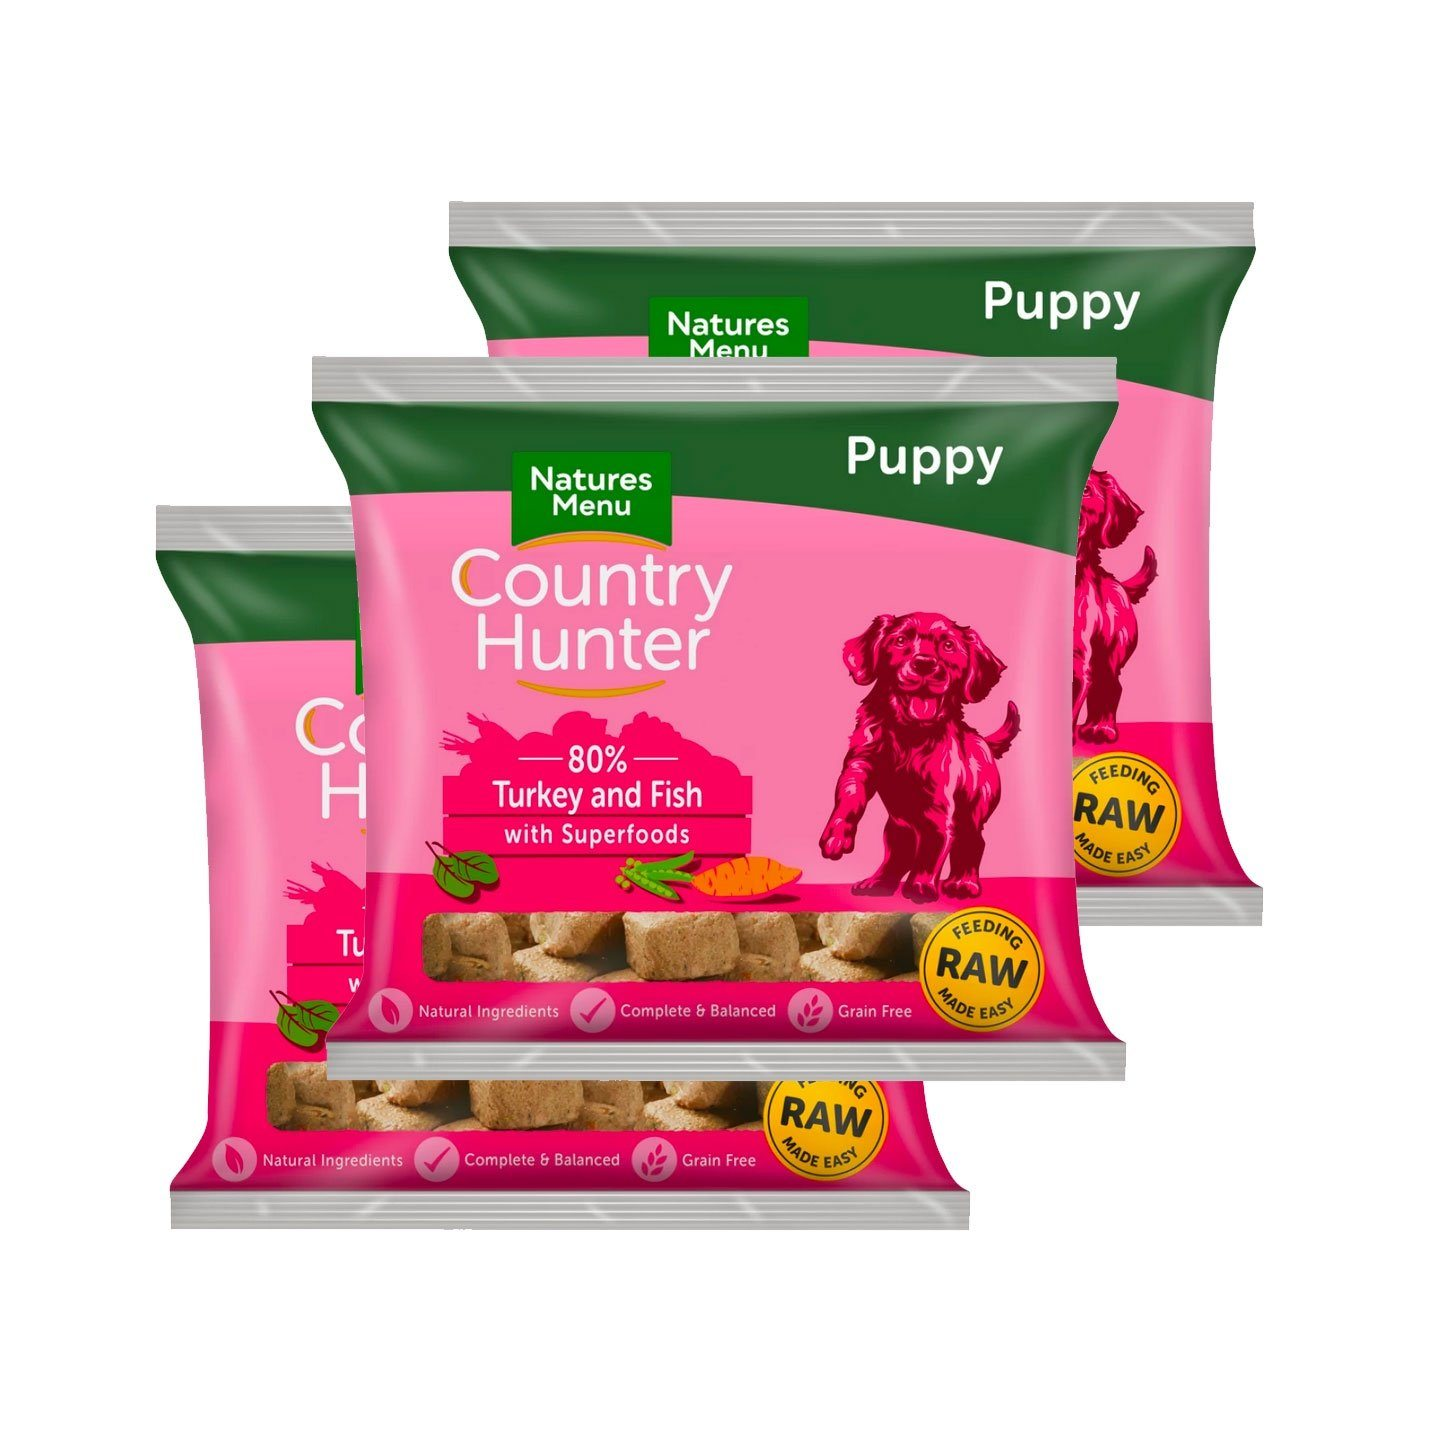 Country Hunter Puppy Bundle x10 Dog Food - Frozen Natures Menu